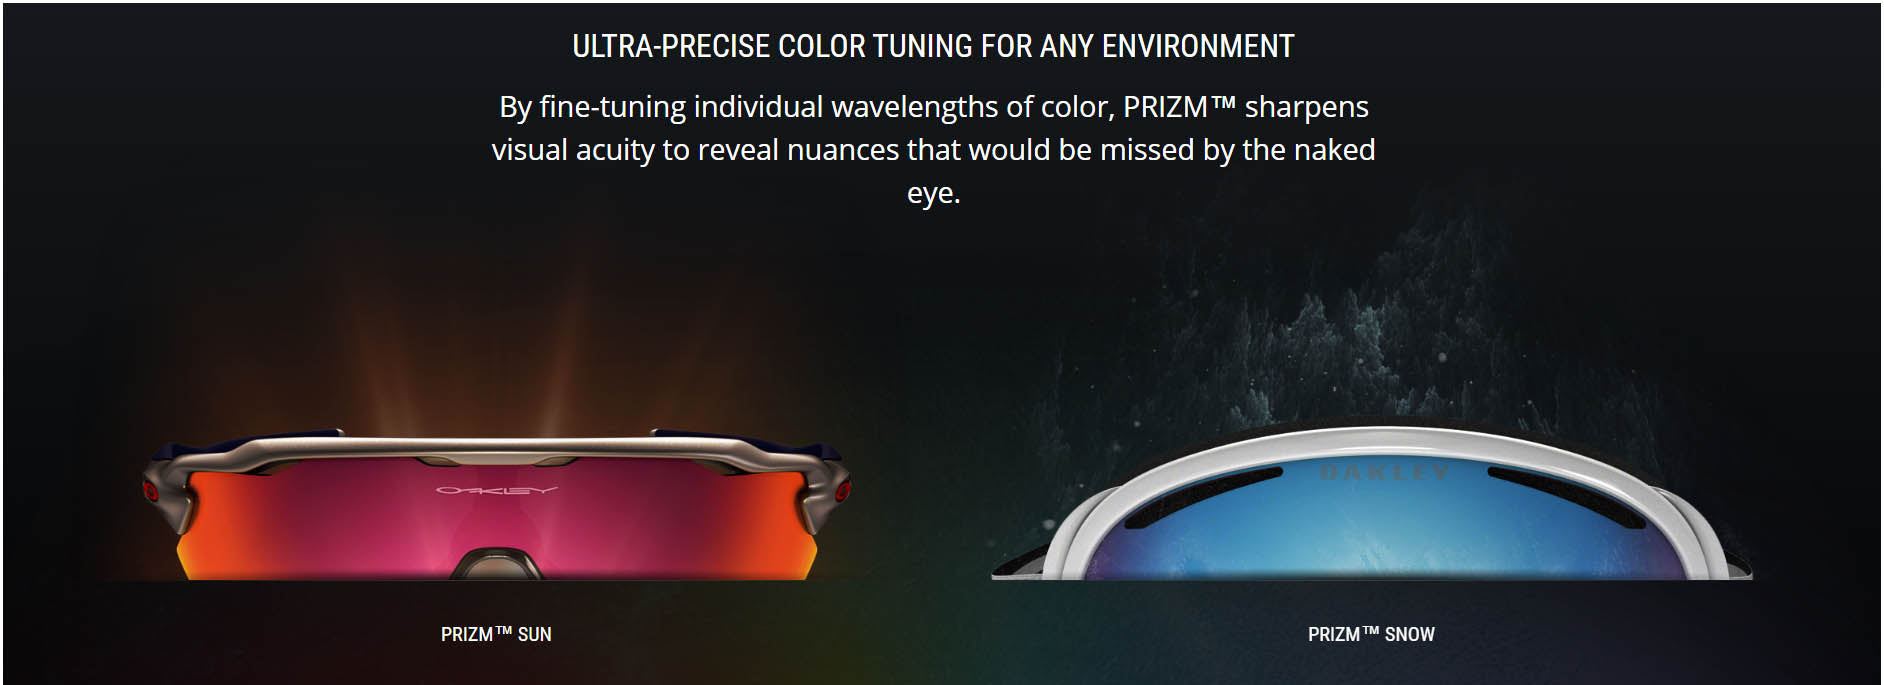 ULTRA-PRECISE COLOR TUNING FOR ANY ENVIRONMENT  By fine-tuning individual wavelengths of color, PRIZM™ sharpens visual acuity to reveal nuances that would be missed by the naked eye.    PRIZM™ SUN  EXPLORE PRIZM™ SUN